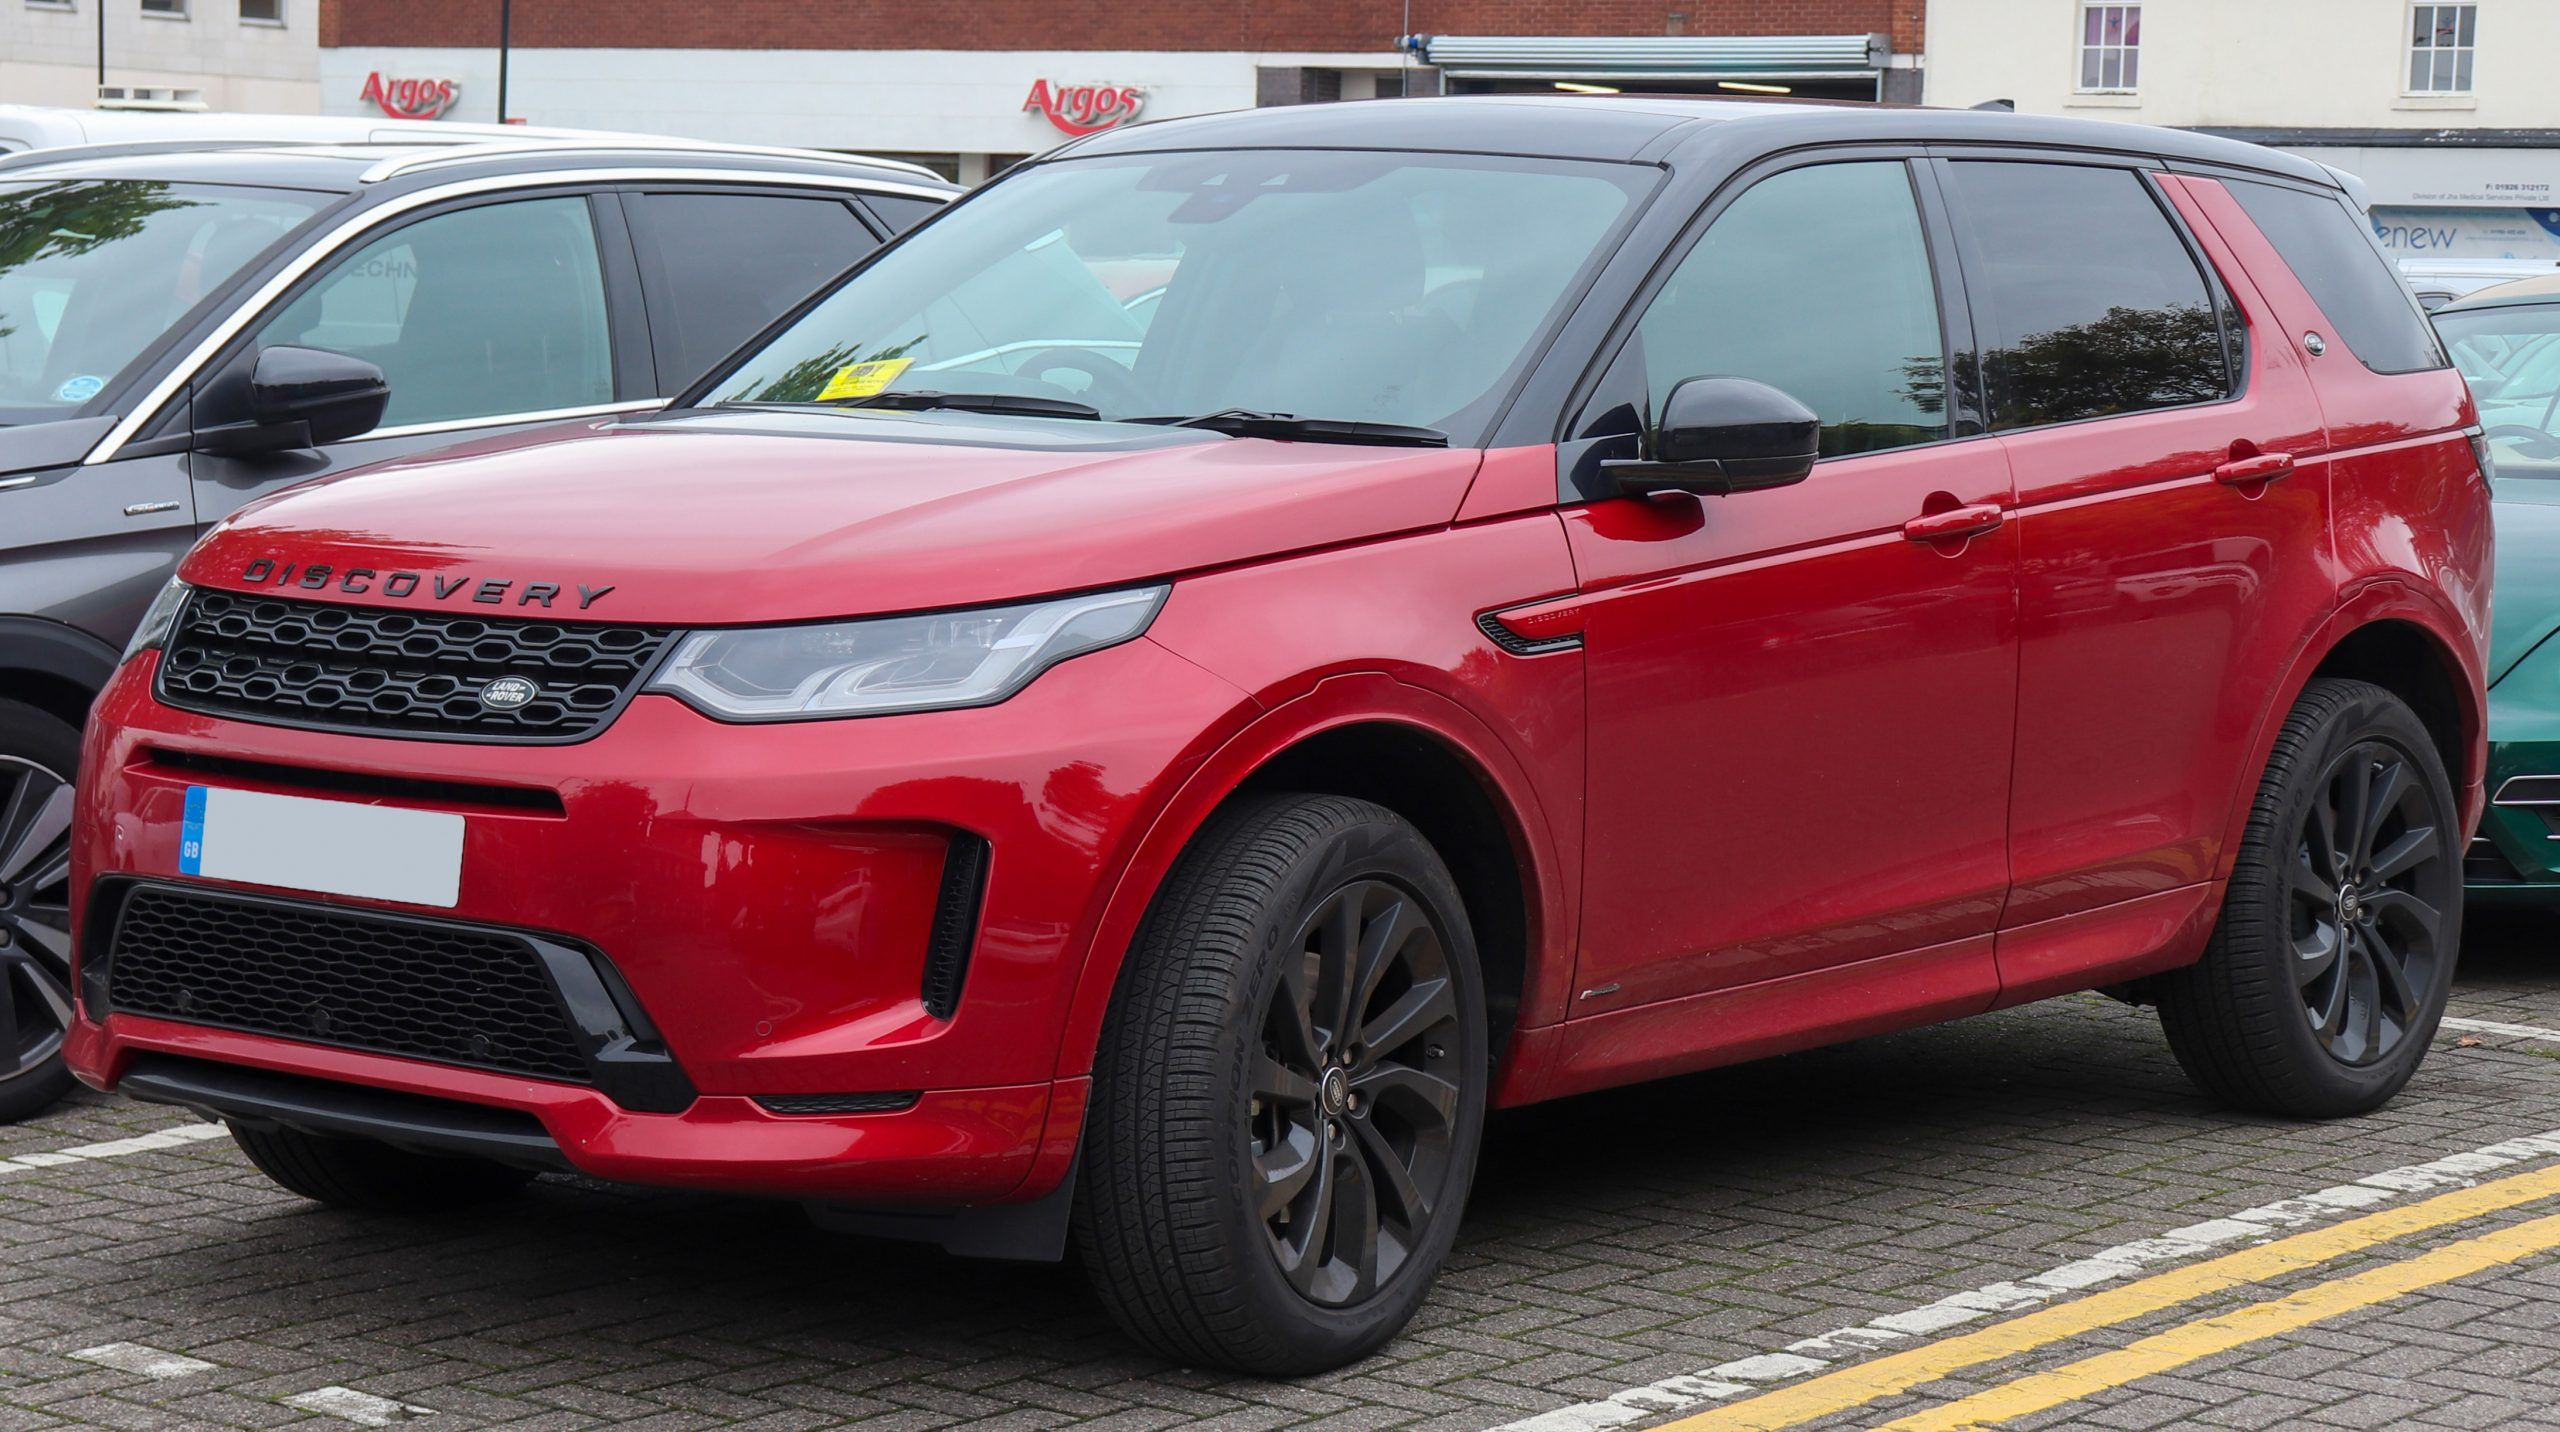 Land Rover Discovery Sport Wikipedia 2016 Land Rover Discovery Sport Hse Lux Discovery Sport Hse Land Rover Discovery Sport Range Rover Sport